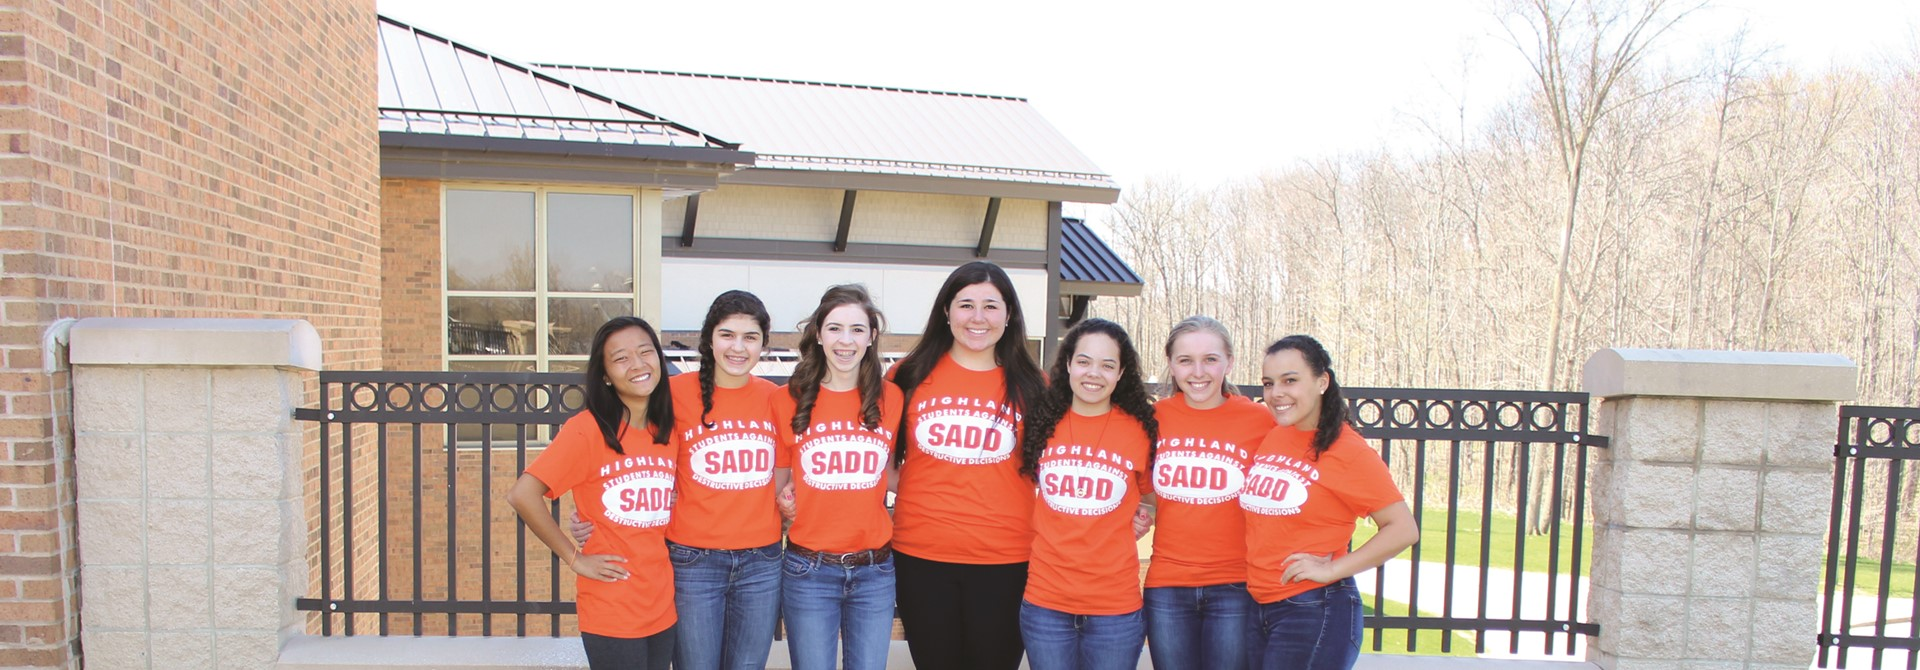 Highland High School SADD Members